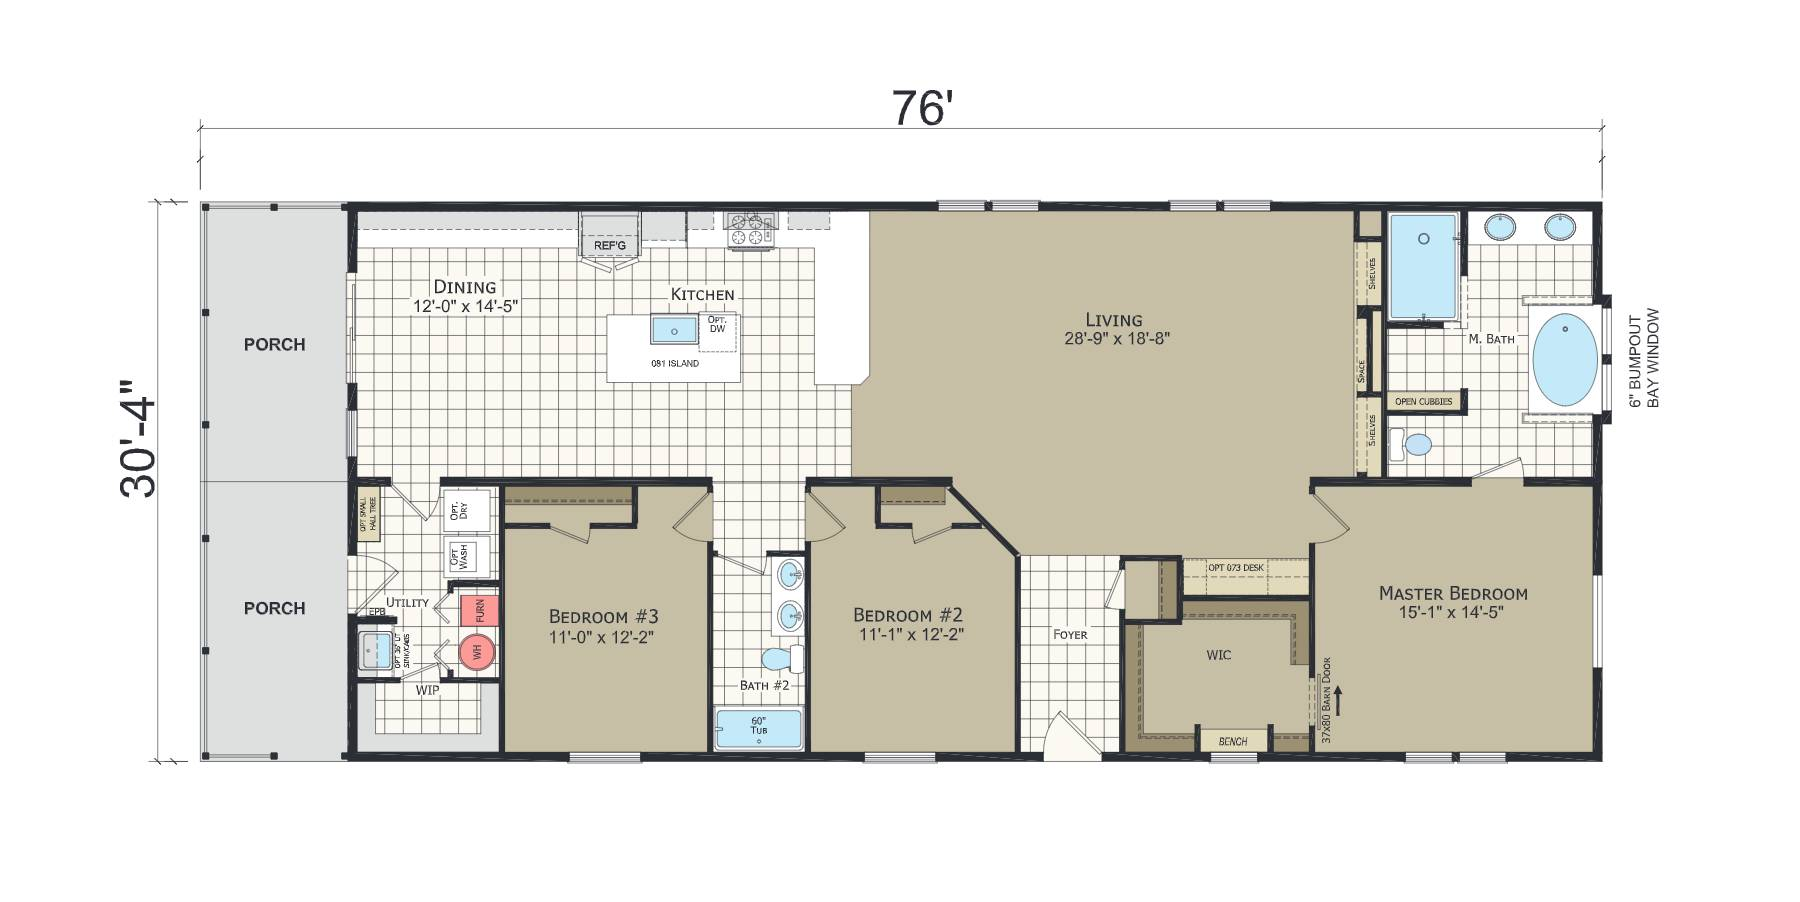 floorplan image for unit 330